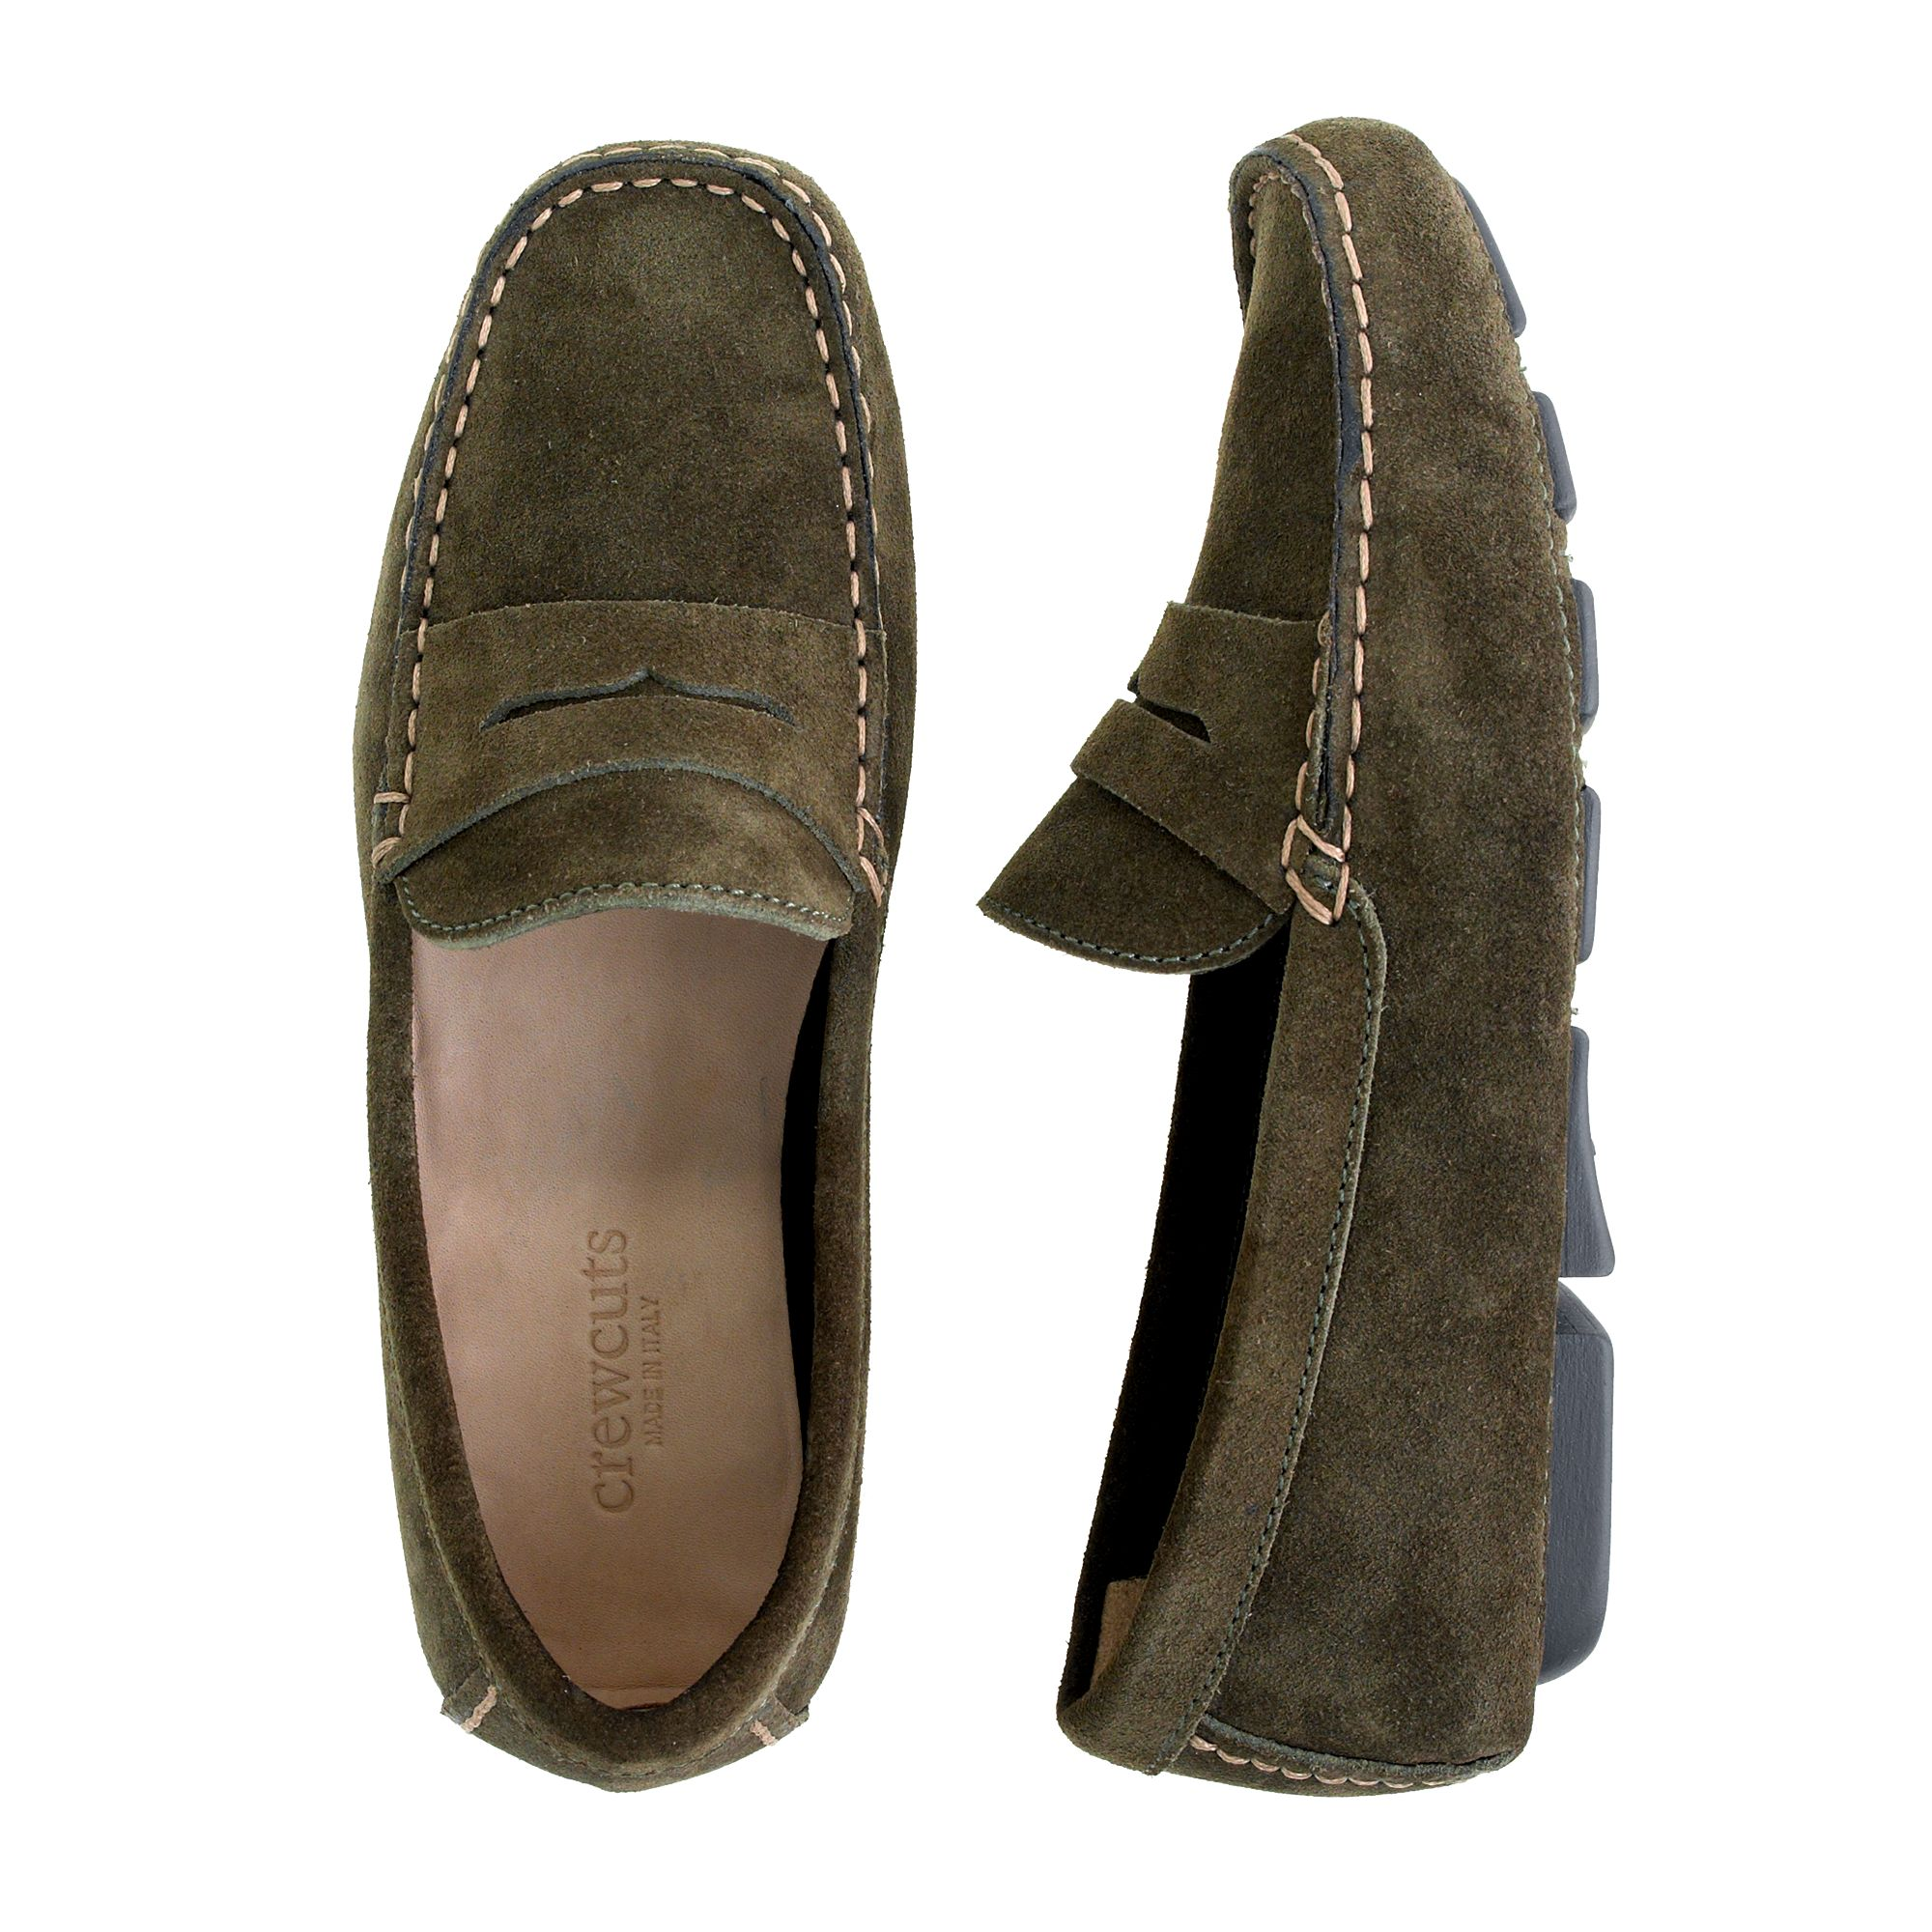 J.Crew Kids Suede Penny Loafers in Green for Men - Lyst